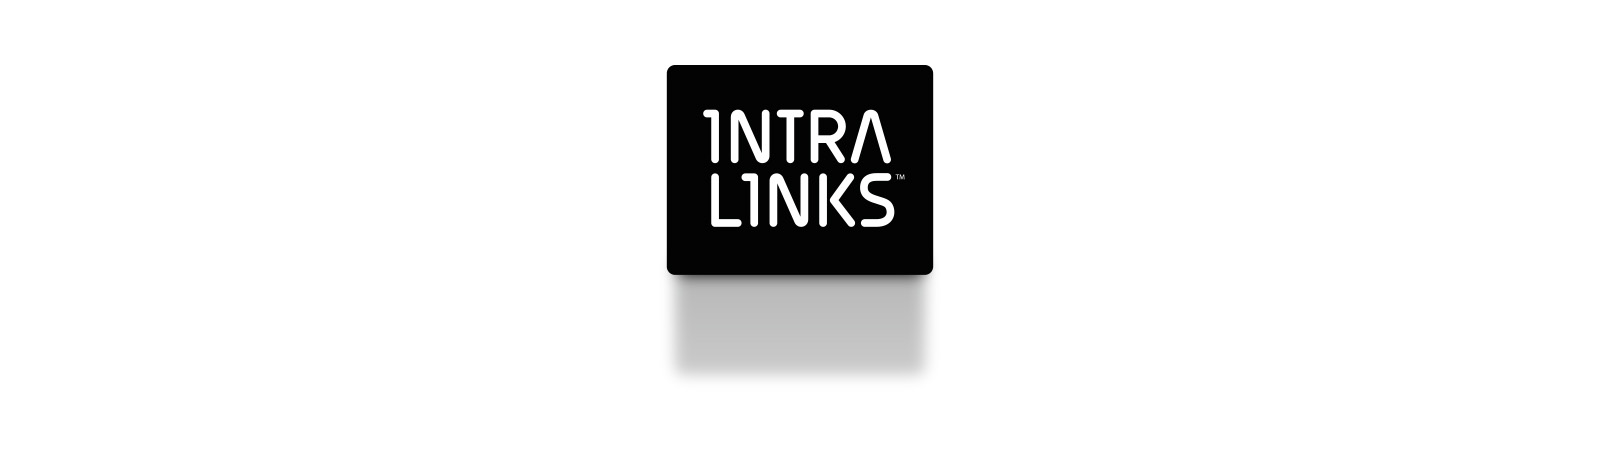 Intralinks Logo Image